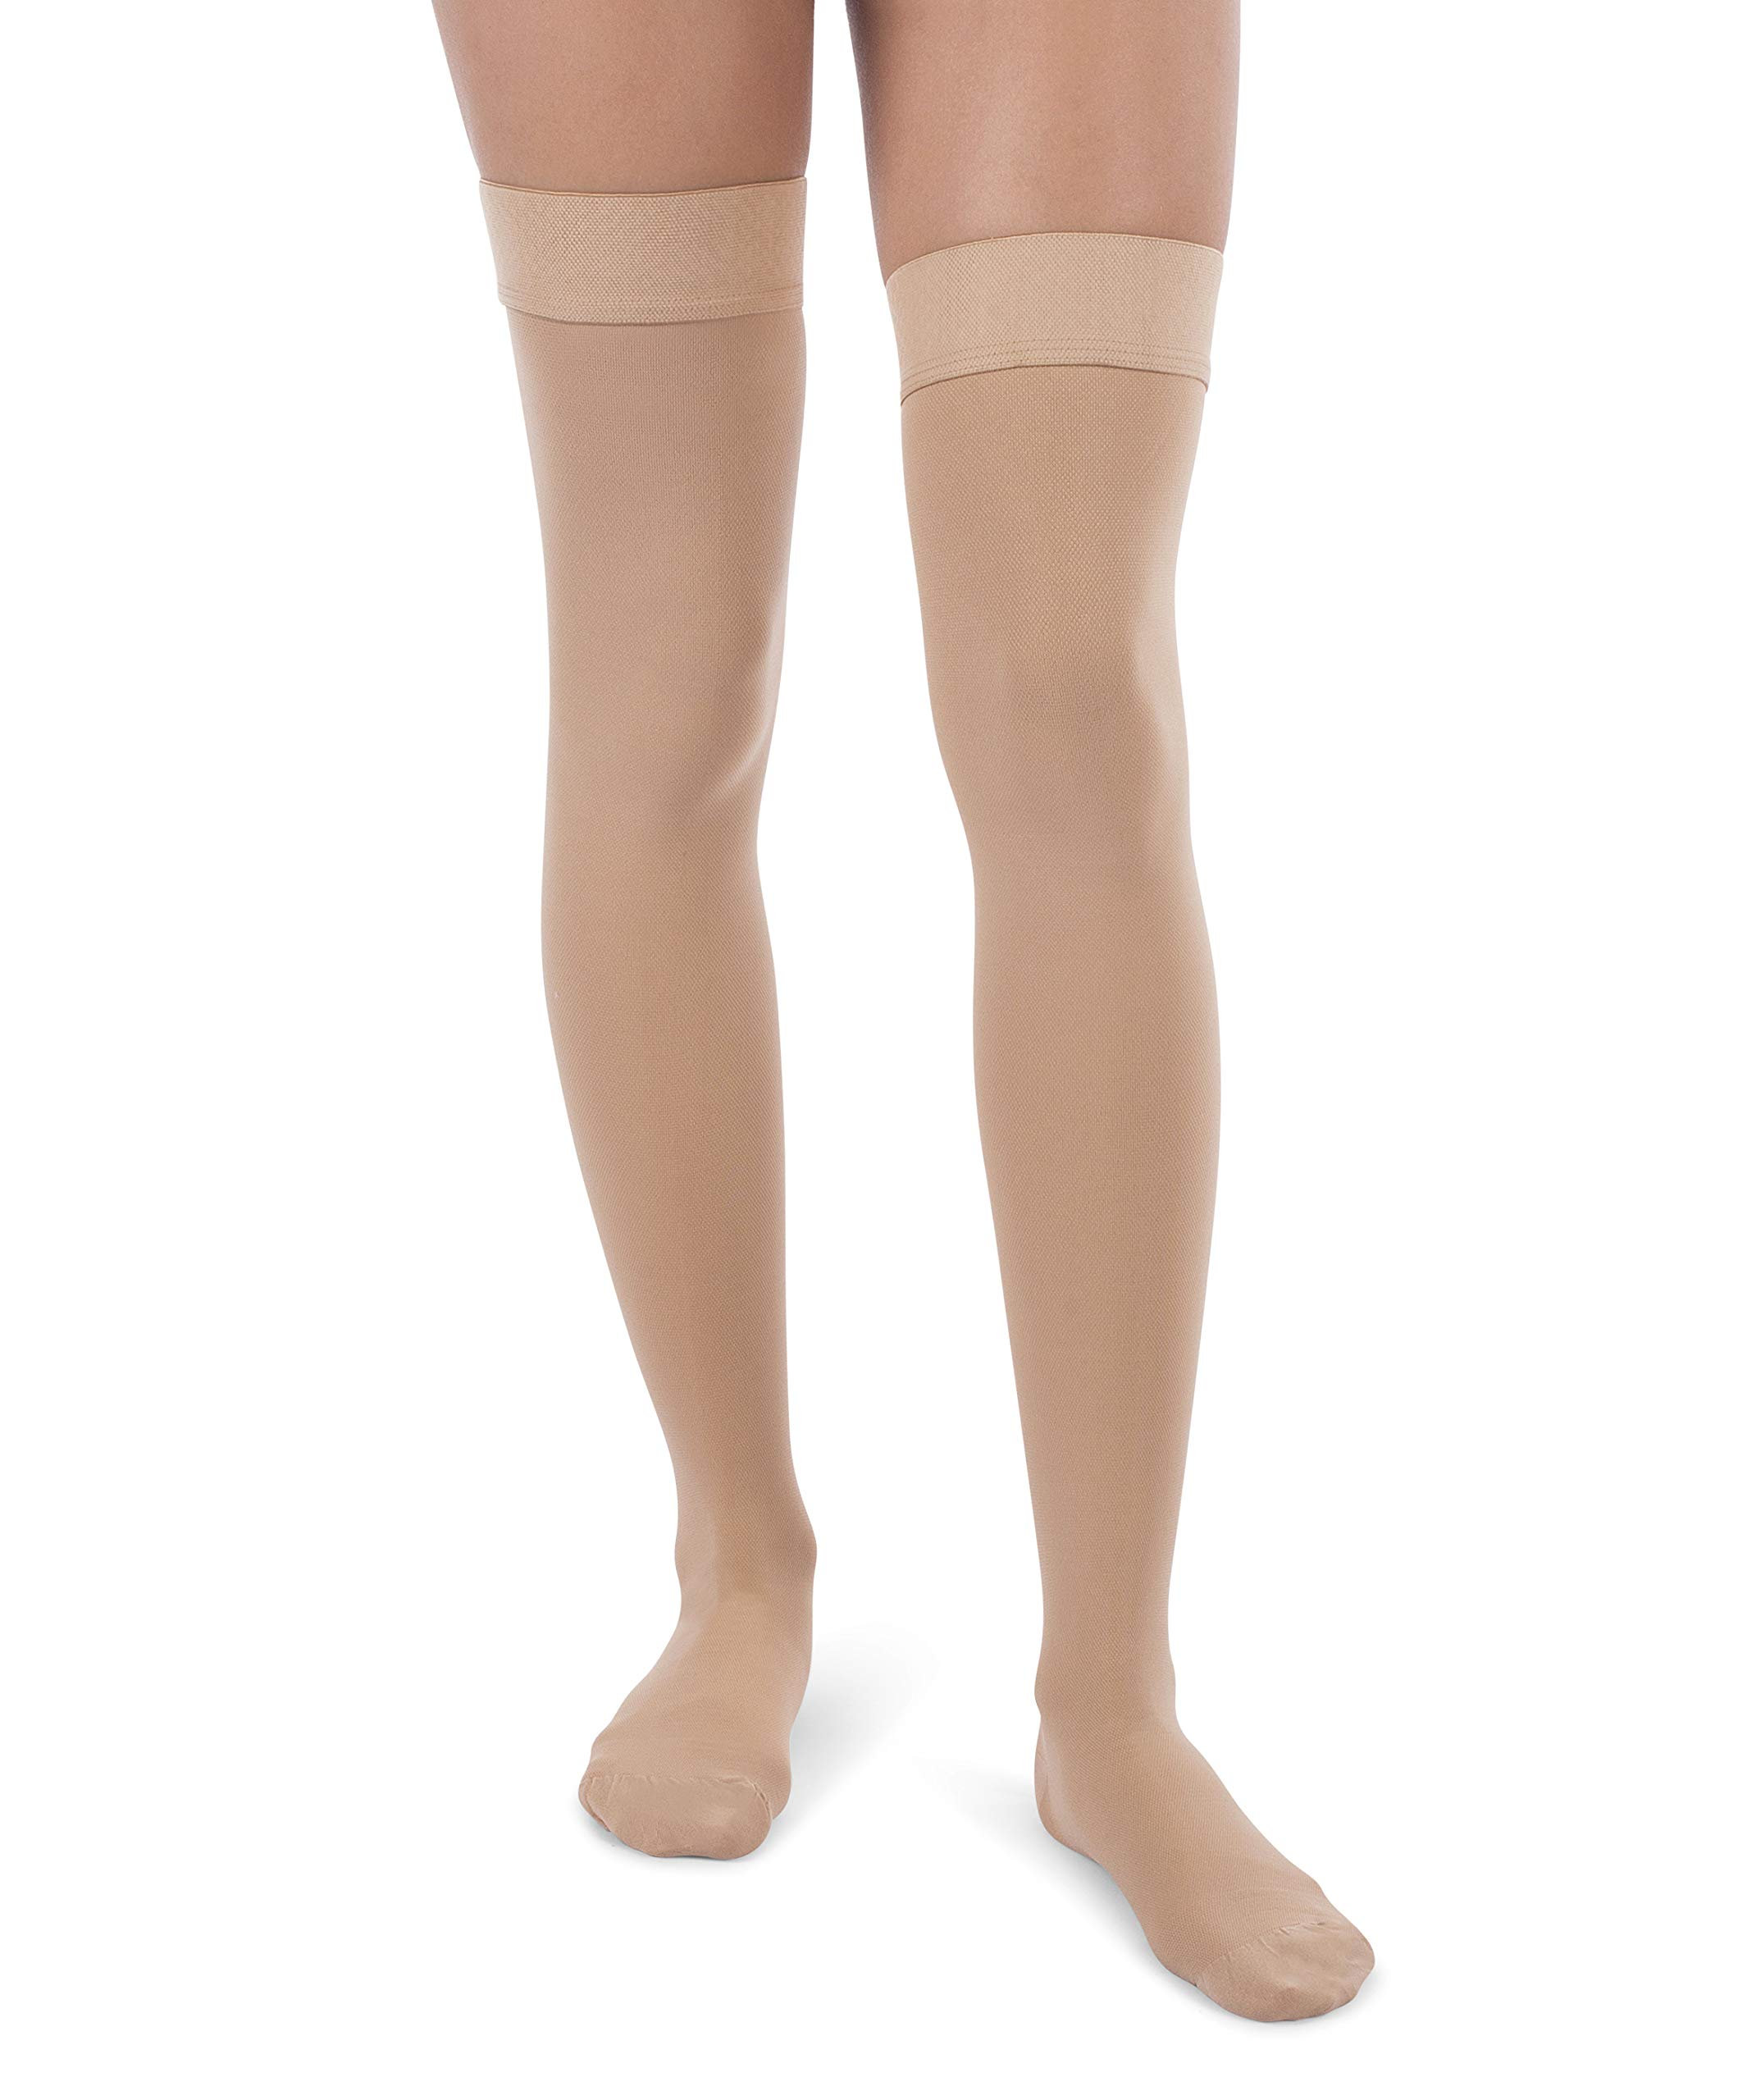 Jomi Compression, Unisex, Thigh High Stockings Collection, 20-30mmHg Surgical Weight Closed Toe 240 (X-Large, Beige) by JOMI COMPRESSION